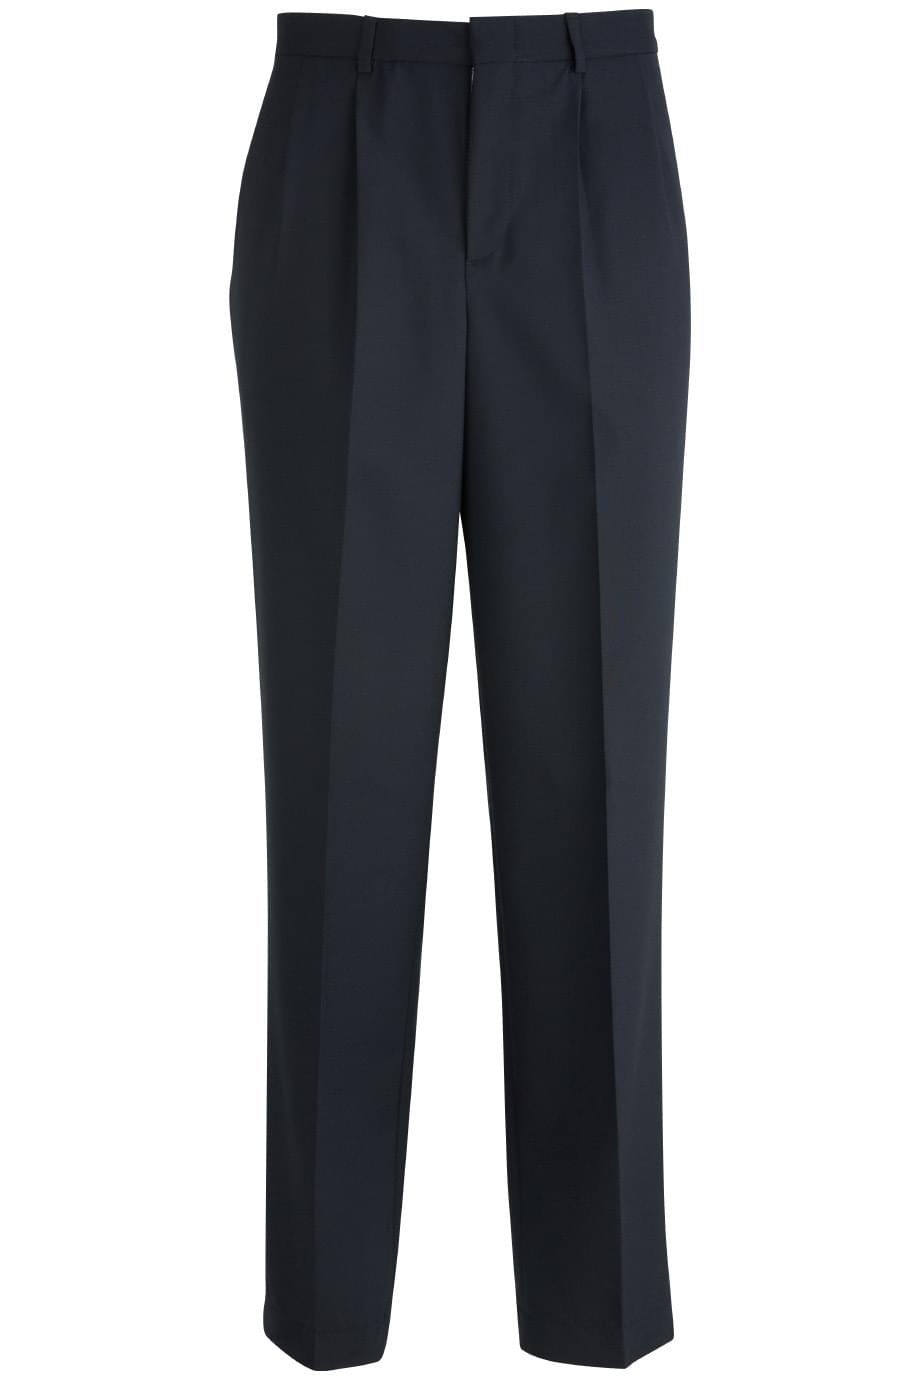 REDWOOD & ROSS® SIGNATURE DRESS PANT